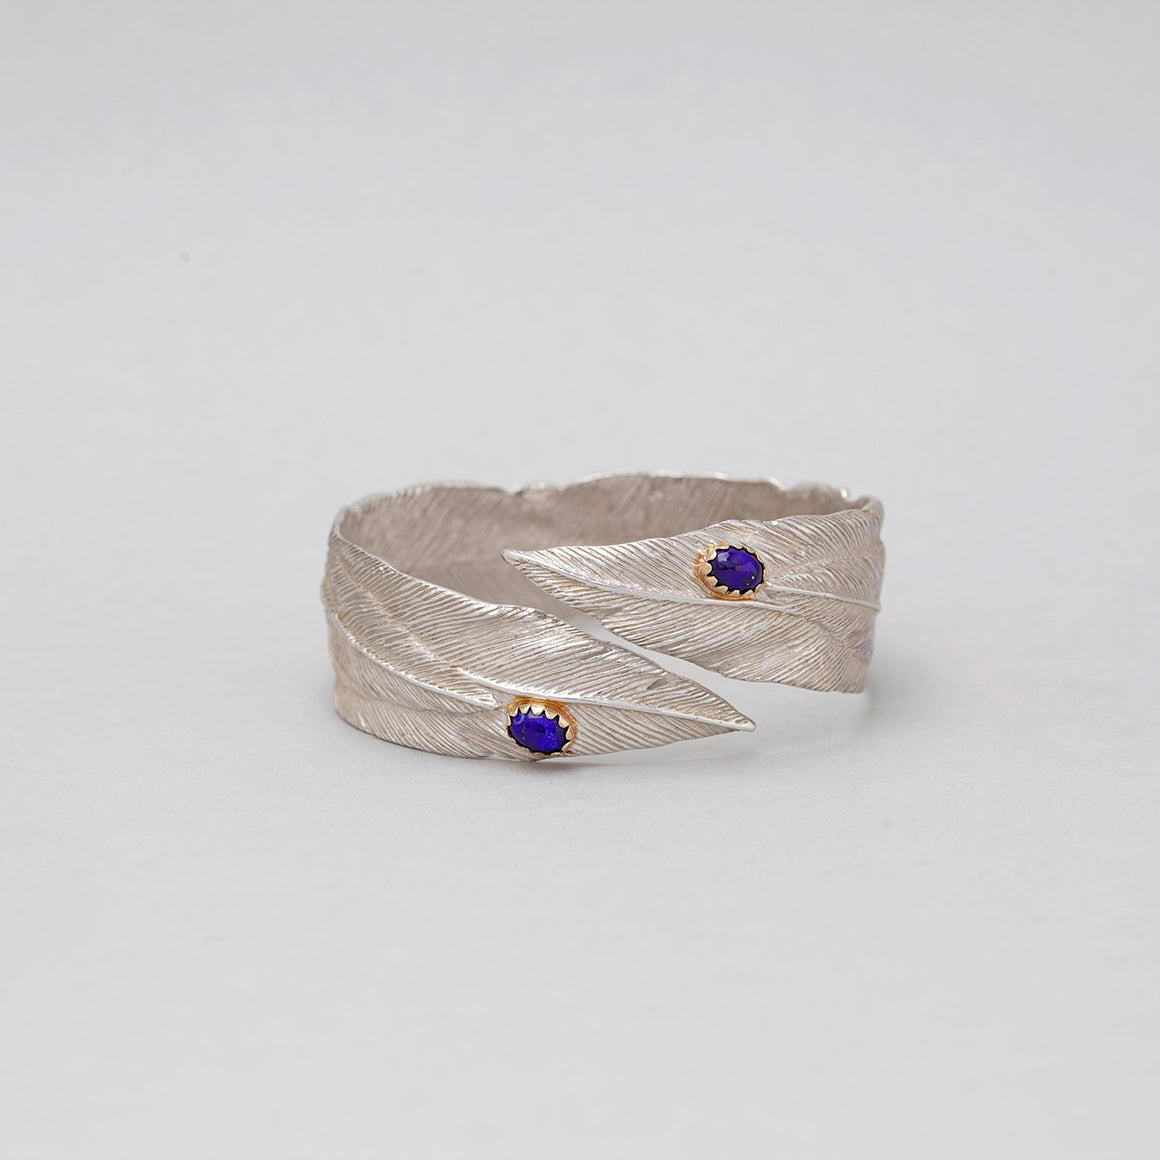 STERLING SILVER FEATHER BANGLE WITH LAPIS